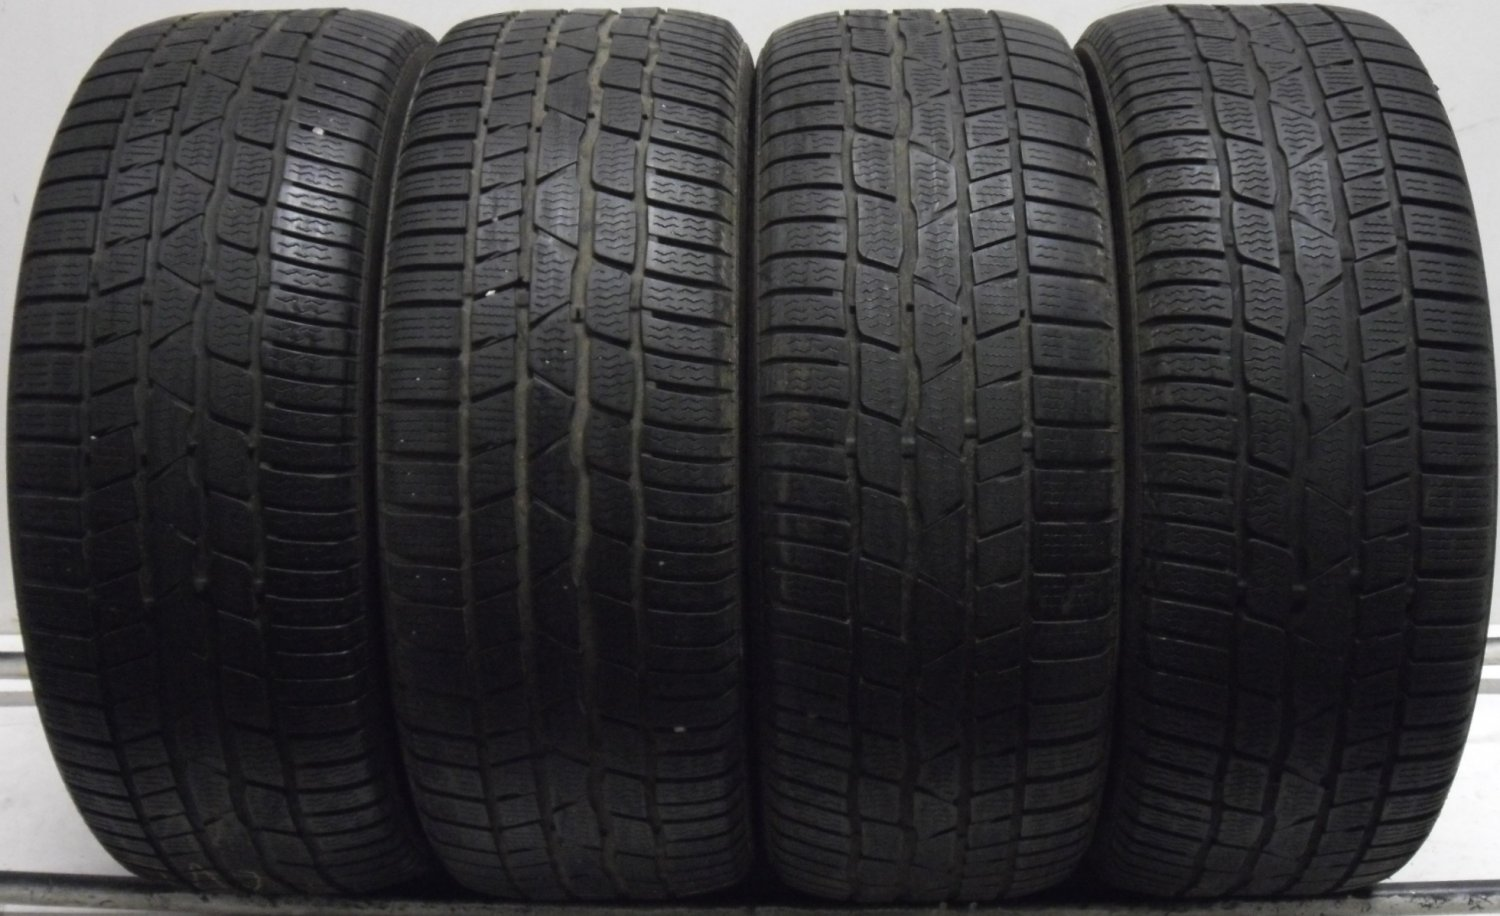 4 2255017 Continental 225 50 17 Winter Car Part Worn Tyres Mud Snow Contact x4  4mm to 5mm